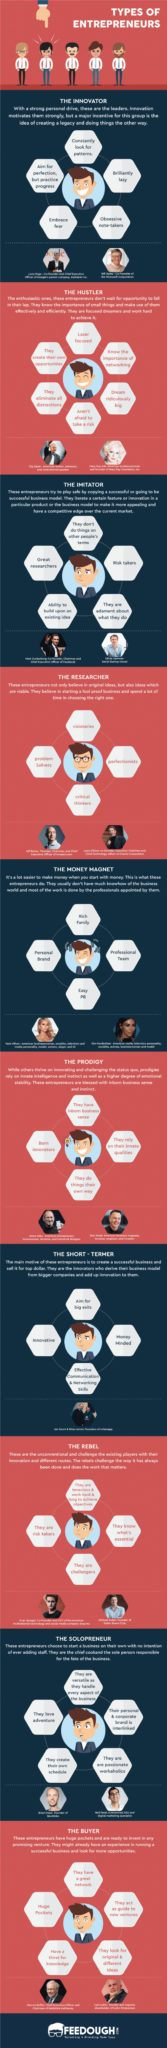 entrepreneur-types-infographic